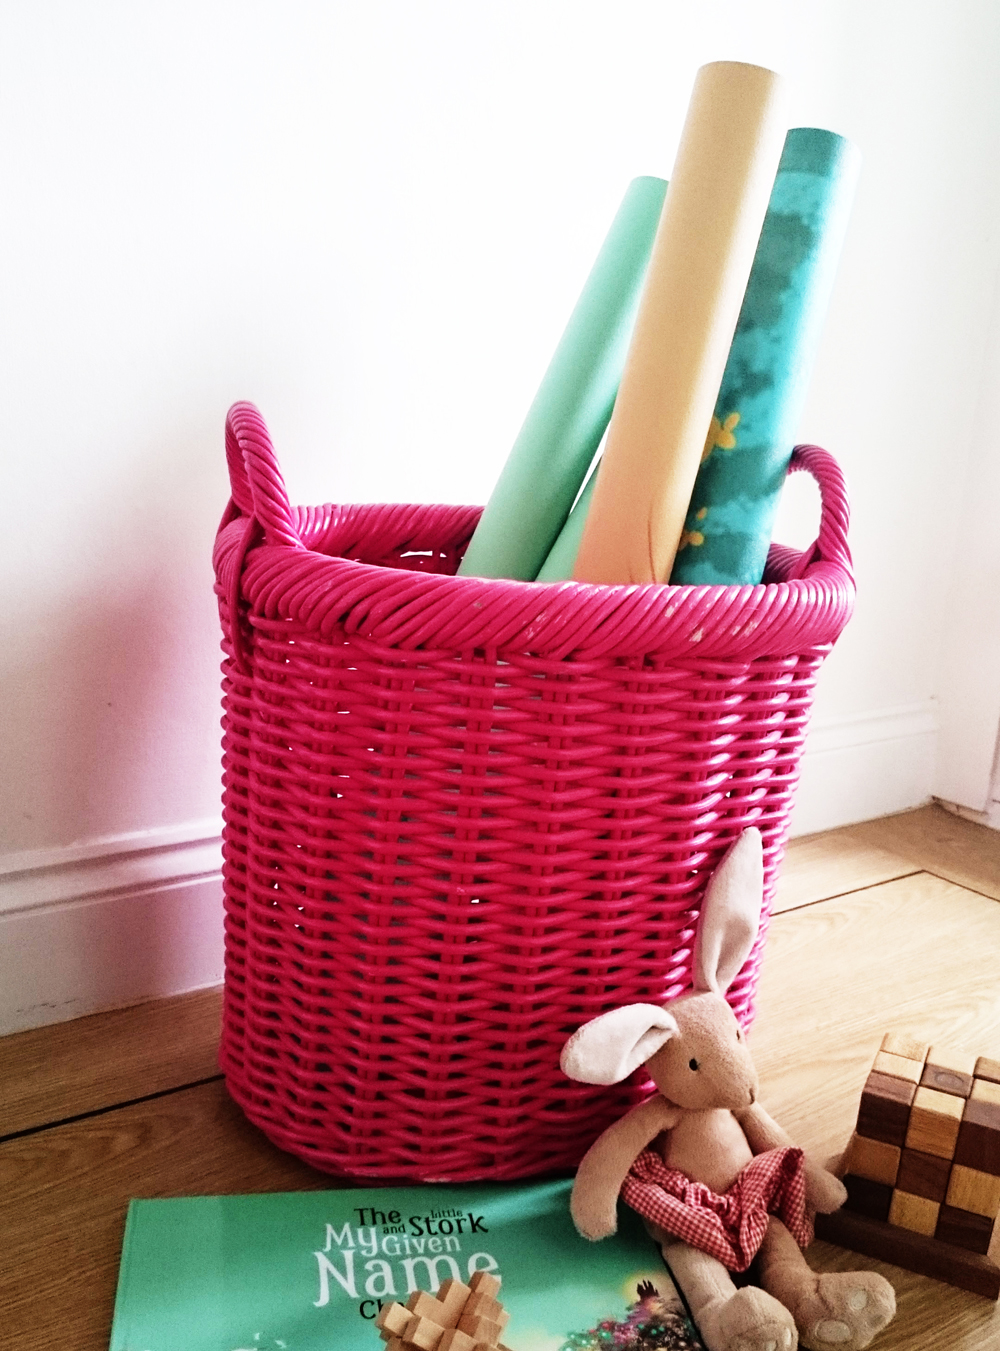 Baby Wallpaper mural basket